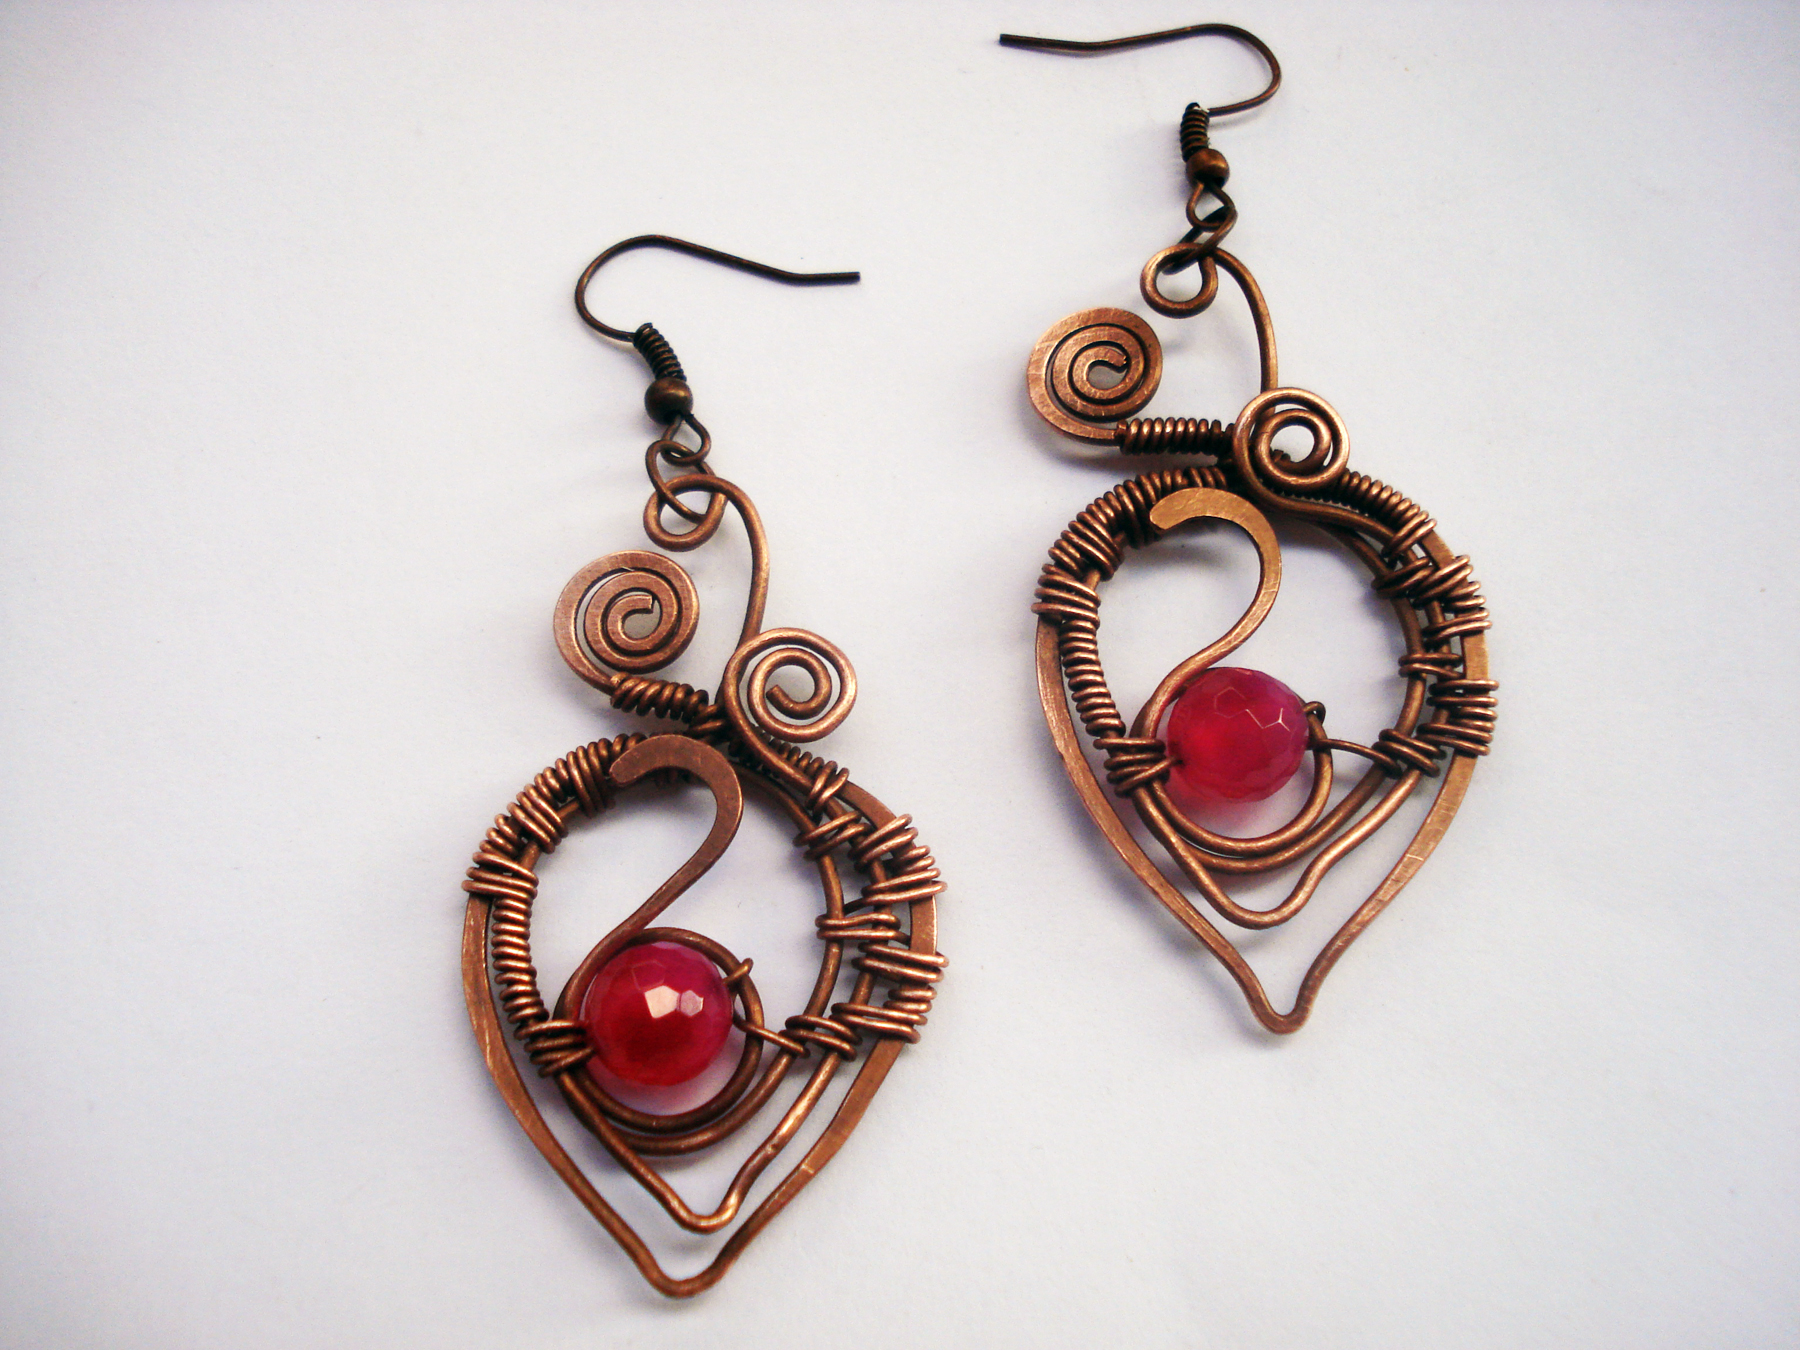 Unusual Handcrafted Jewelry Handmade Jewelry Copper Wire Wrapping Wrapped Wrap Natural